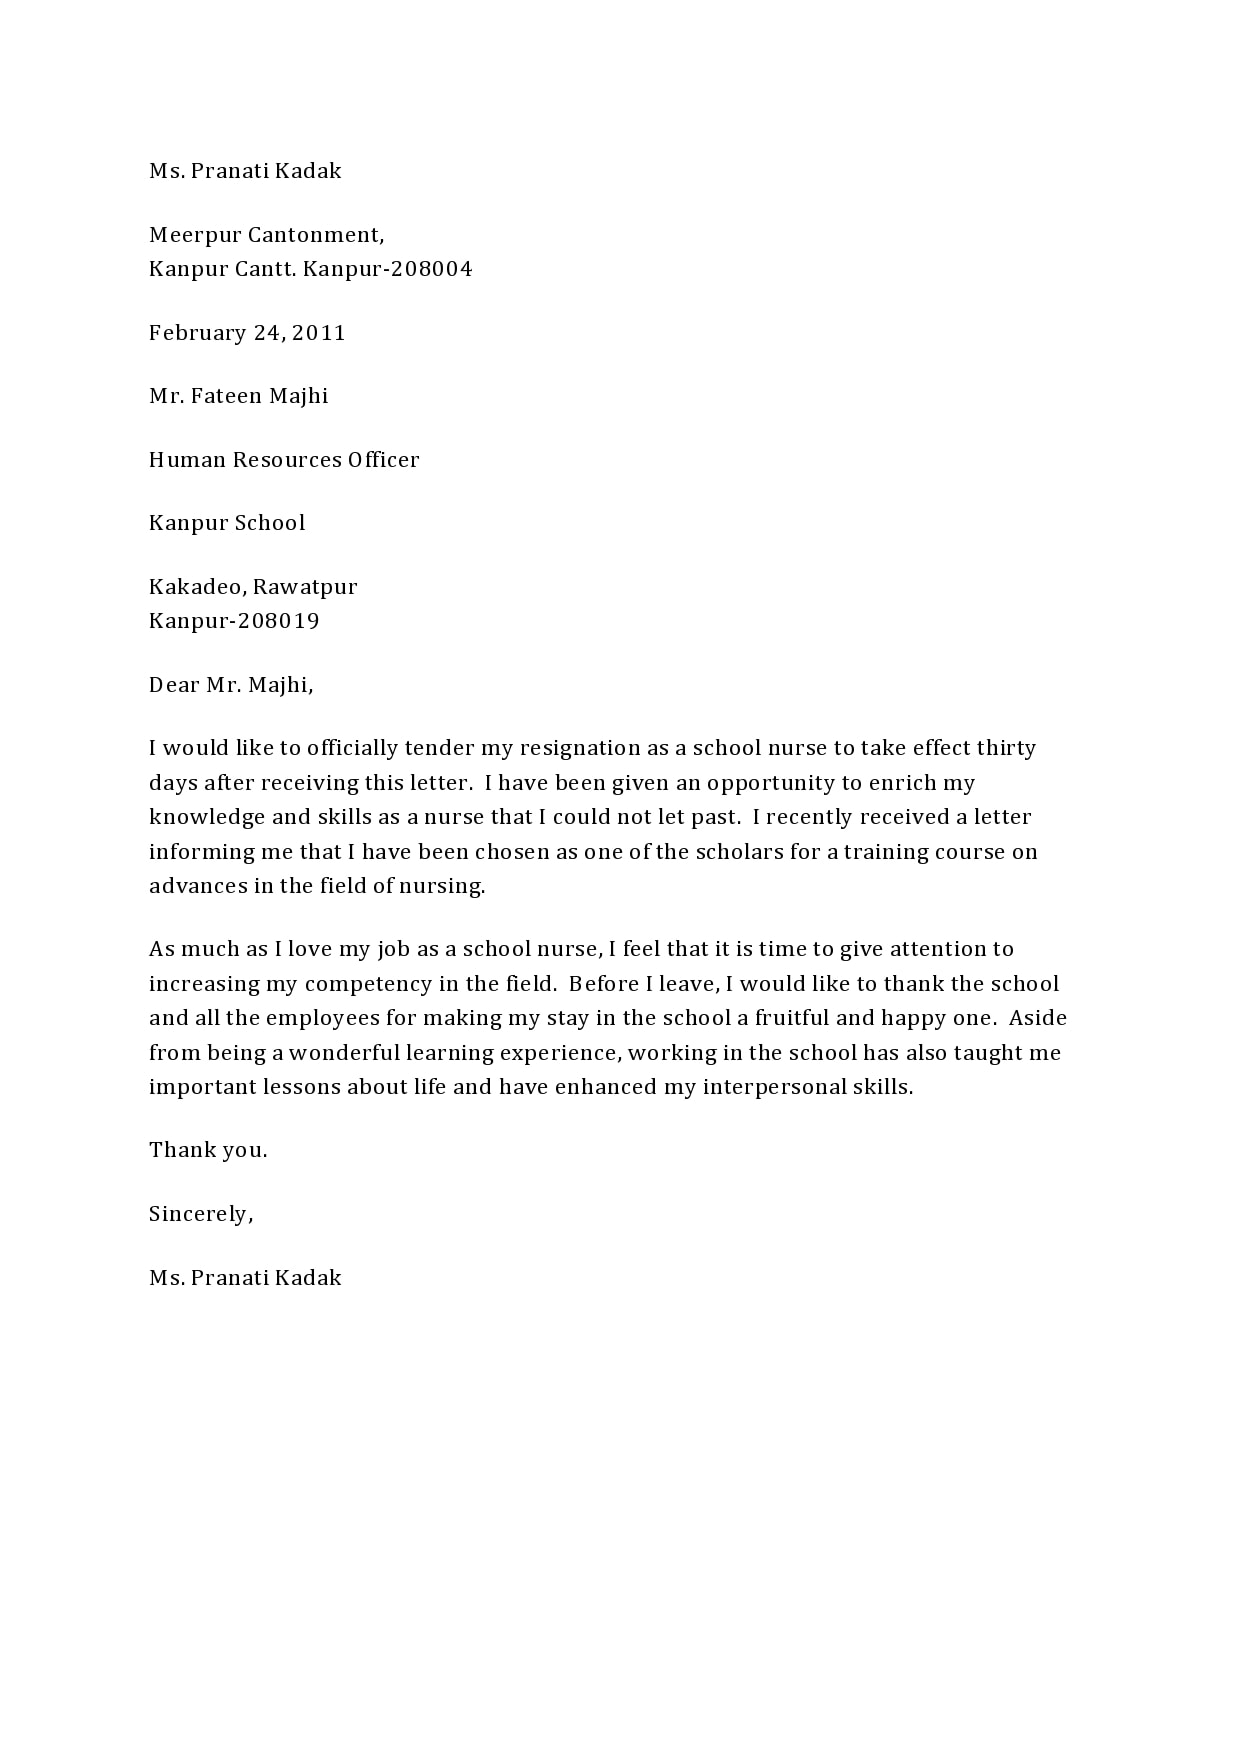 nursing resignation letter 25